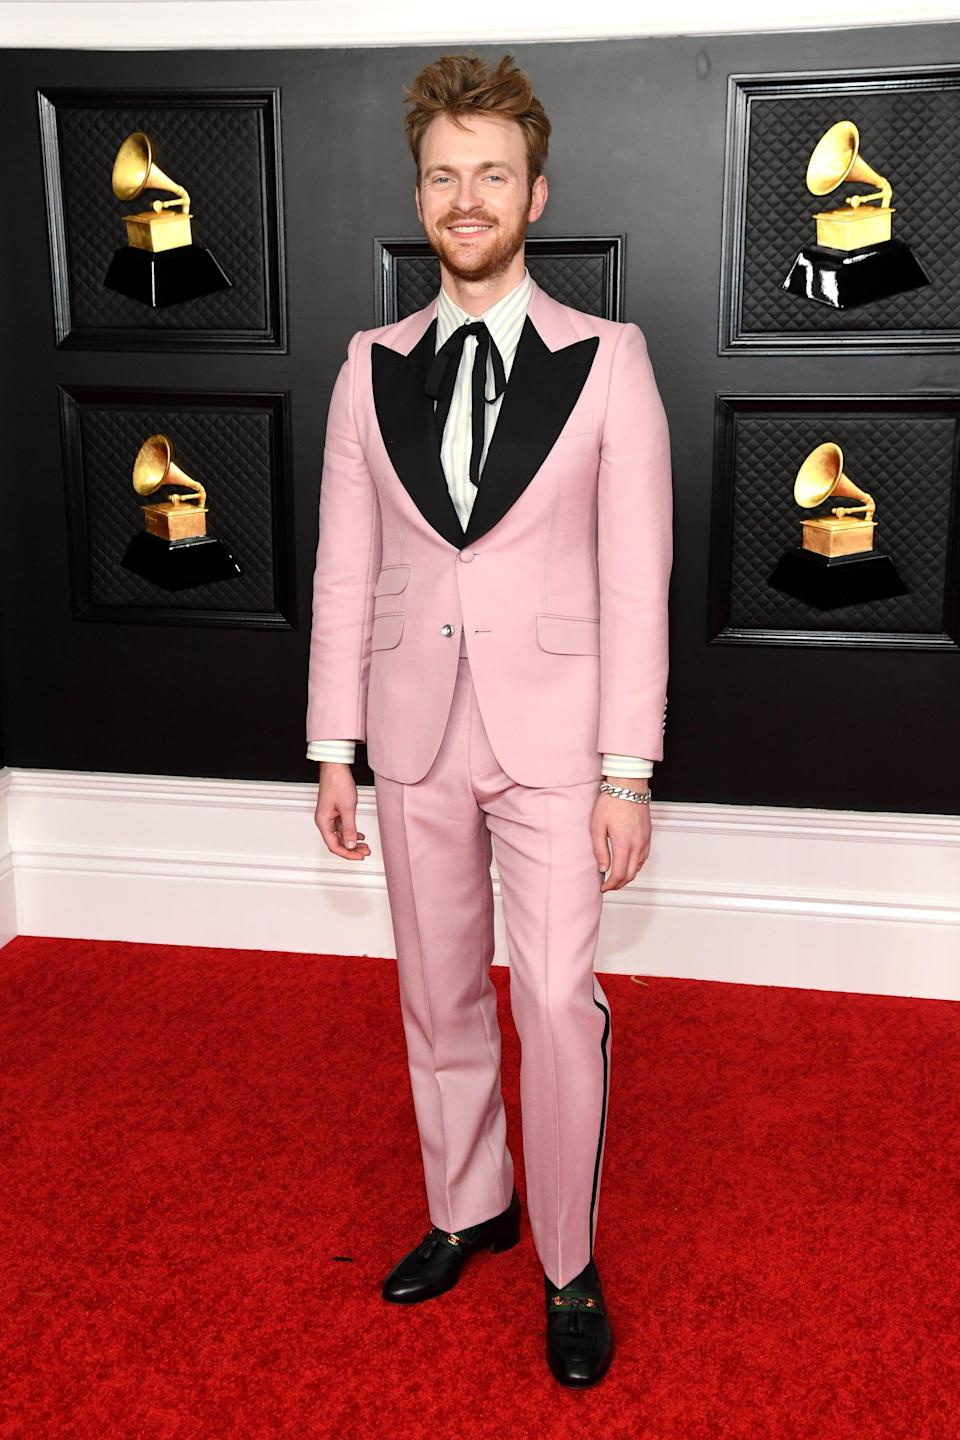 <p>Wearing a pink and black suit.</p>